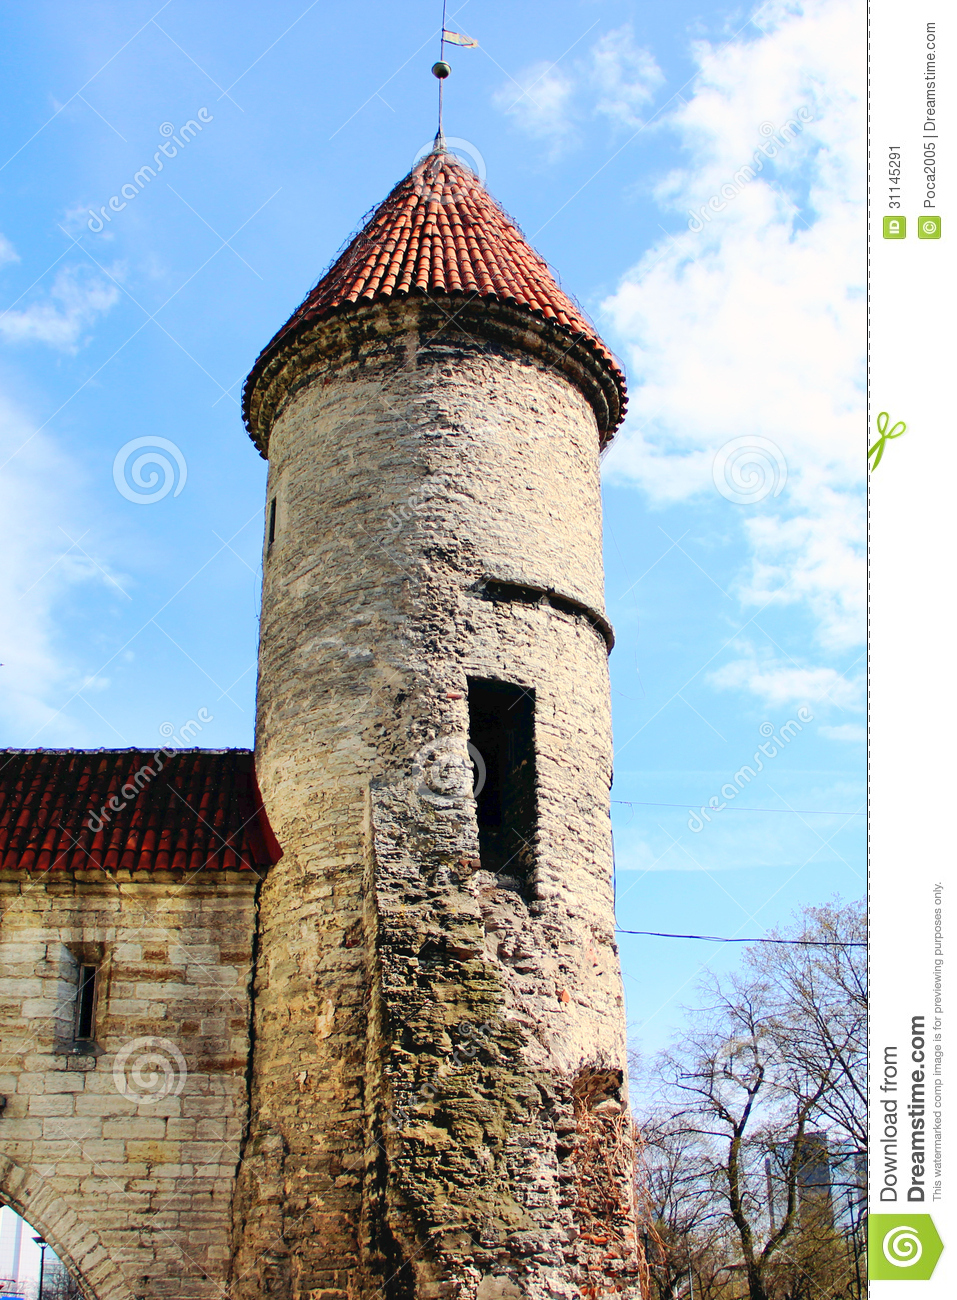 Old houses and towers with a red roof stock image image for Homes with towers